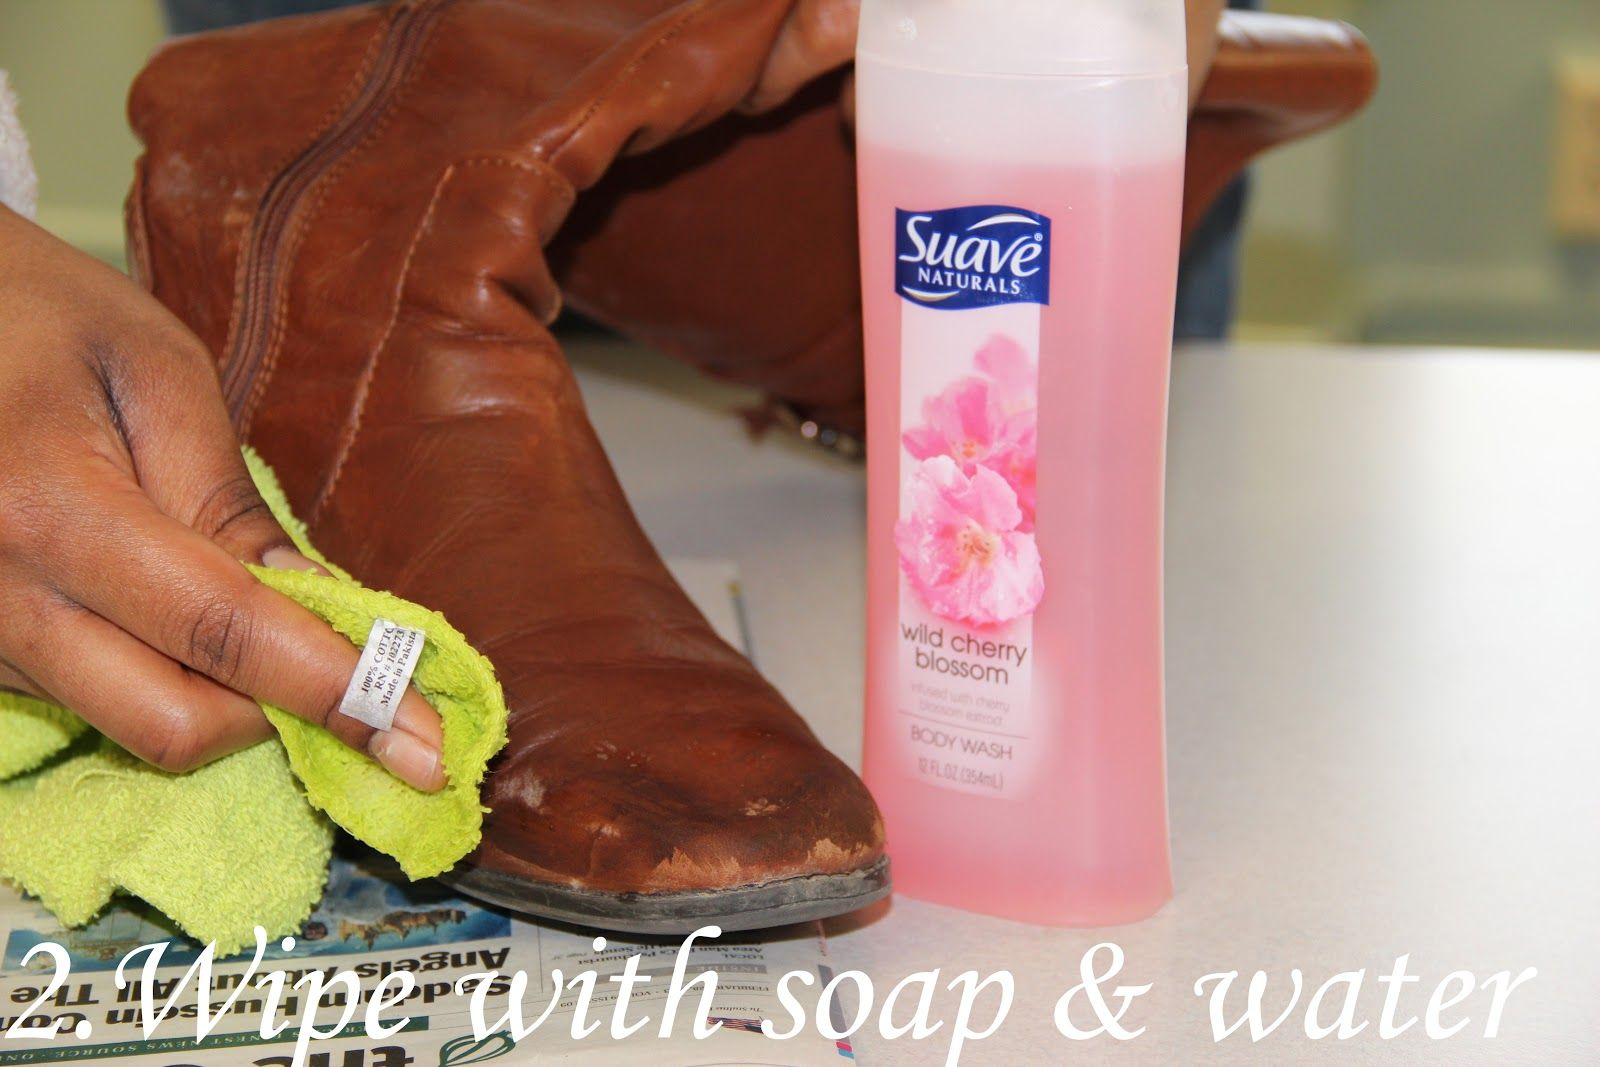 soap+and+cloth+-+salt+stain+one+b.jpg 1,600×1,067 pixels